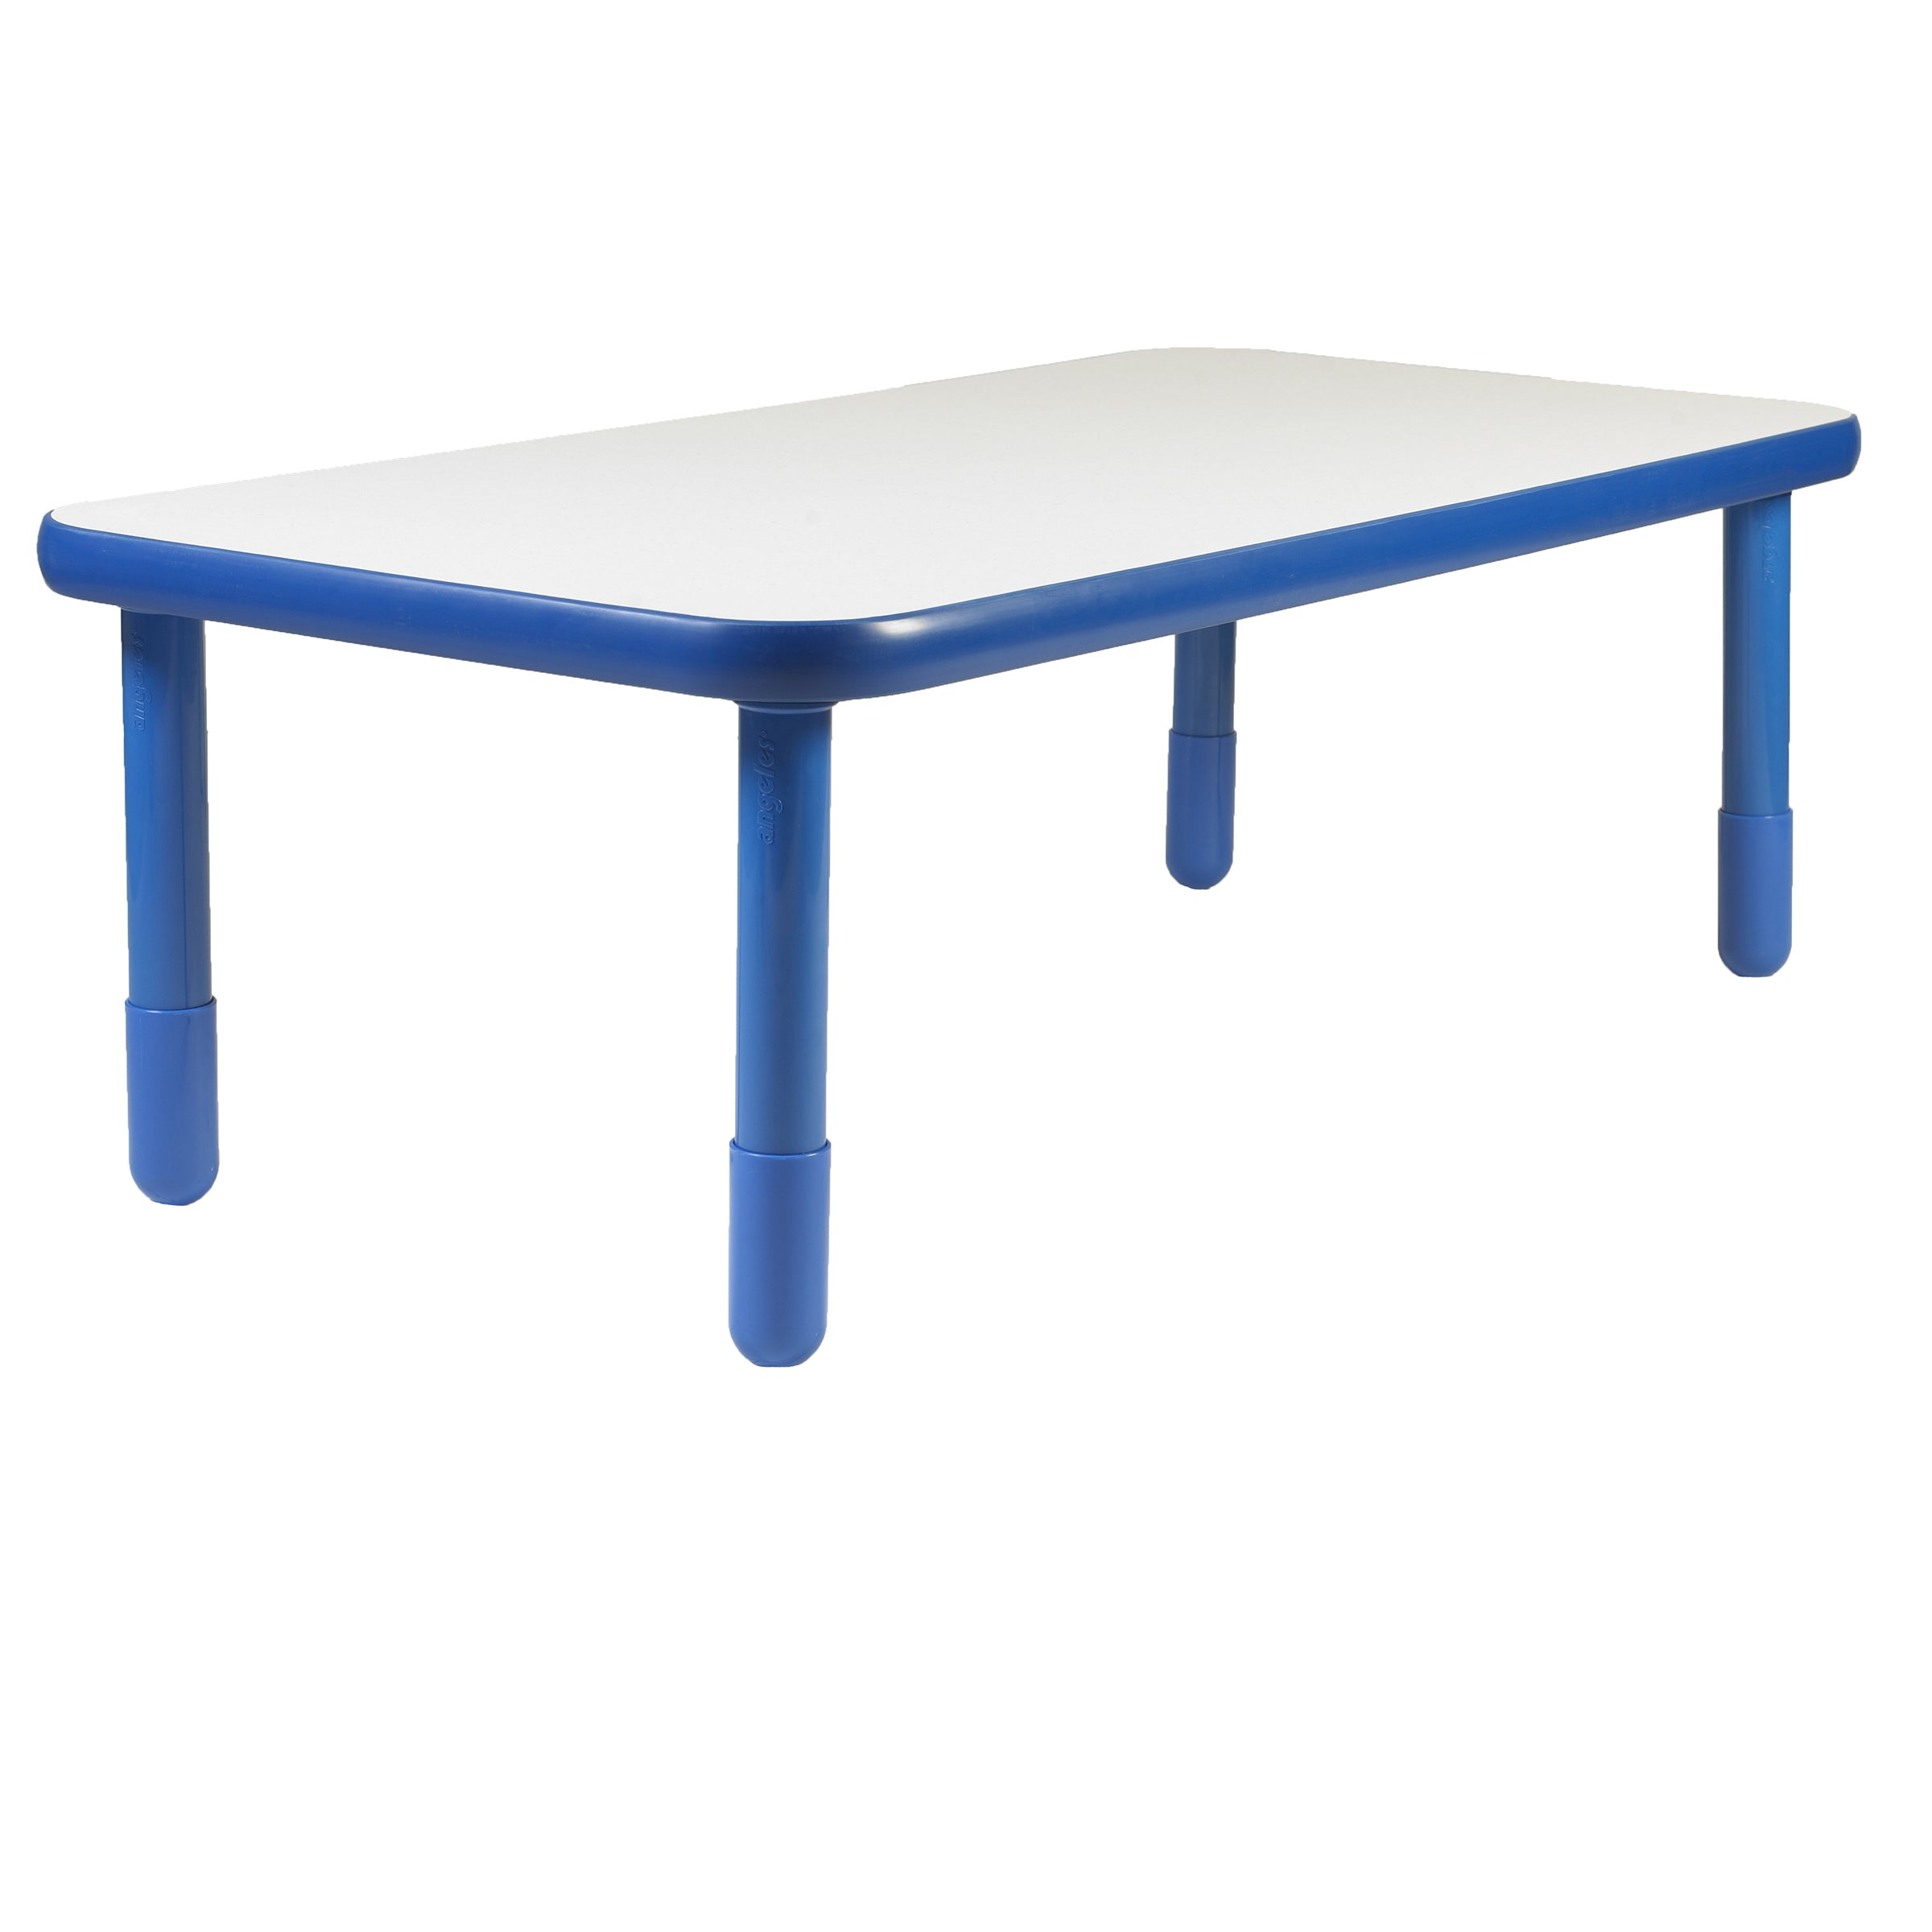 "#45984 BaseLine 60"" x 30"" Rectangular Table - 